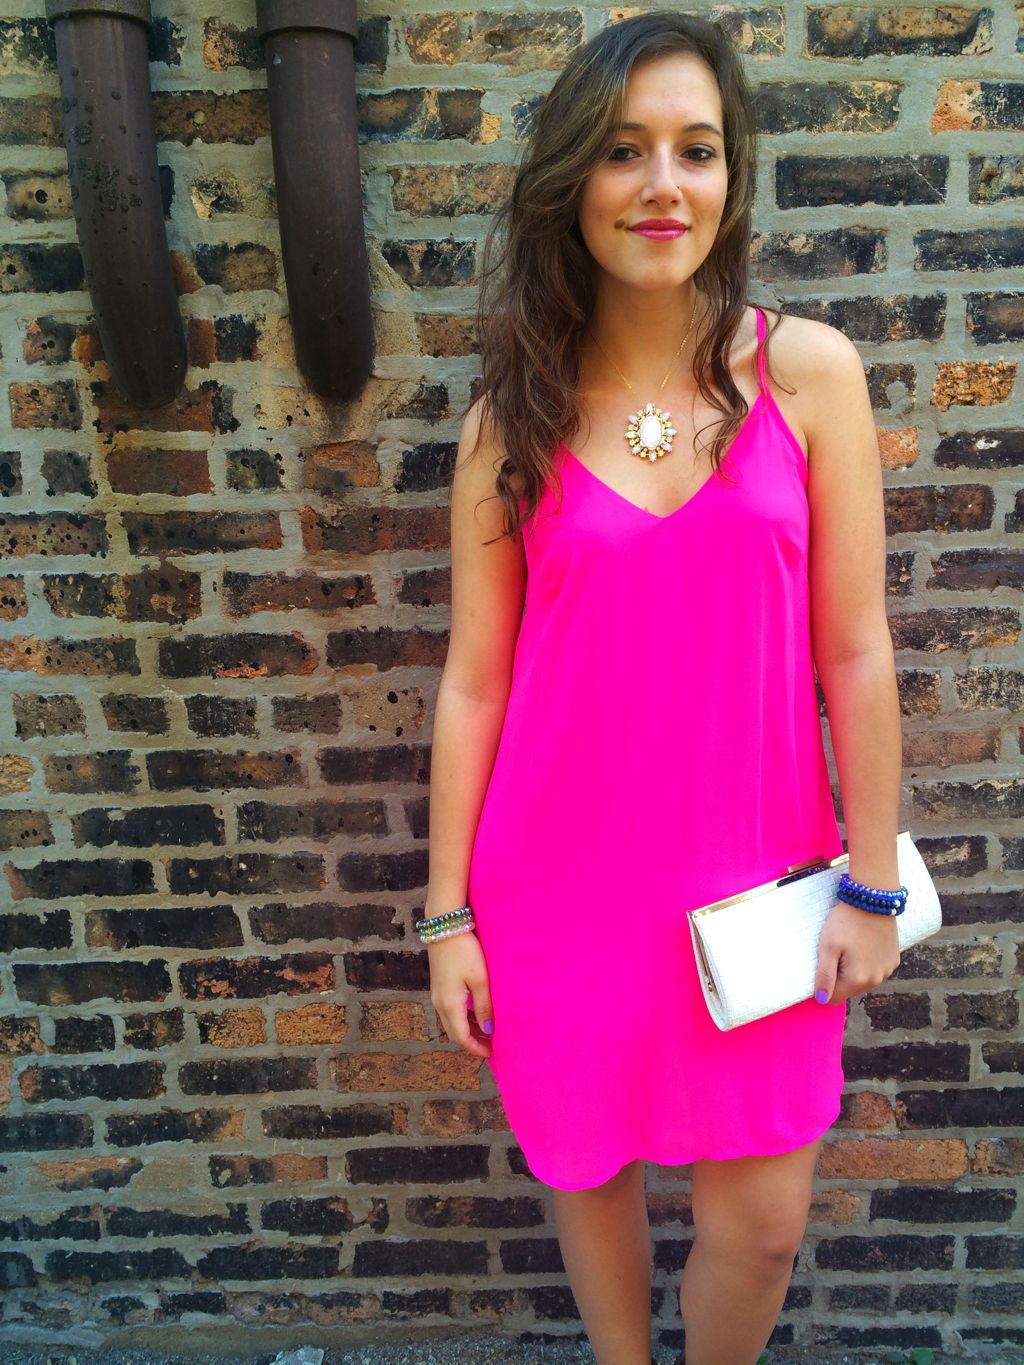 Pink dress and white clutch for summer style